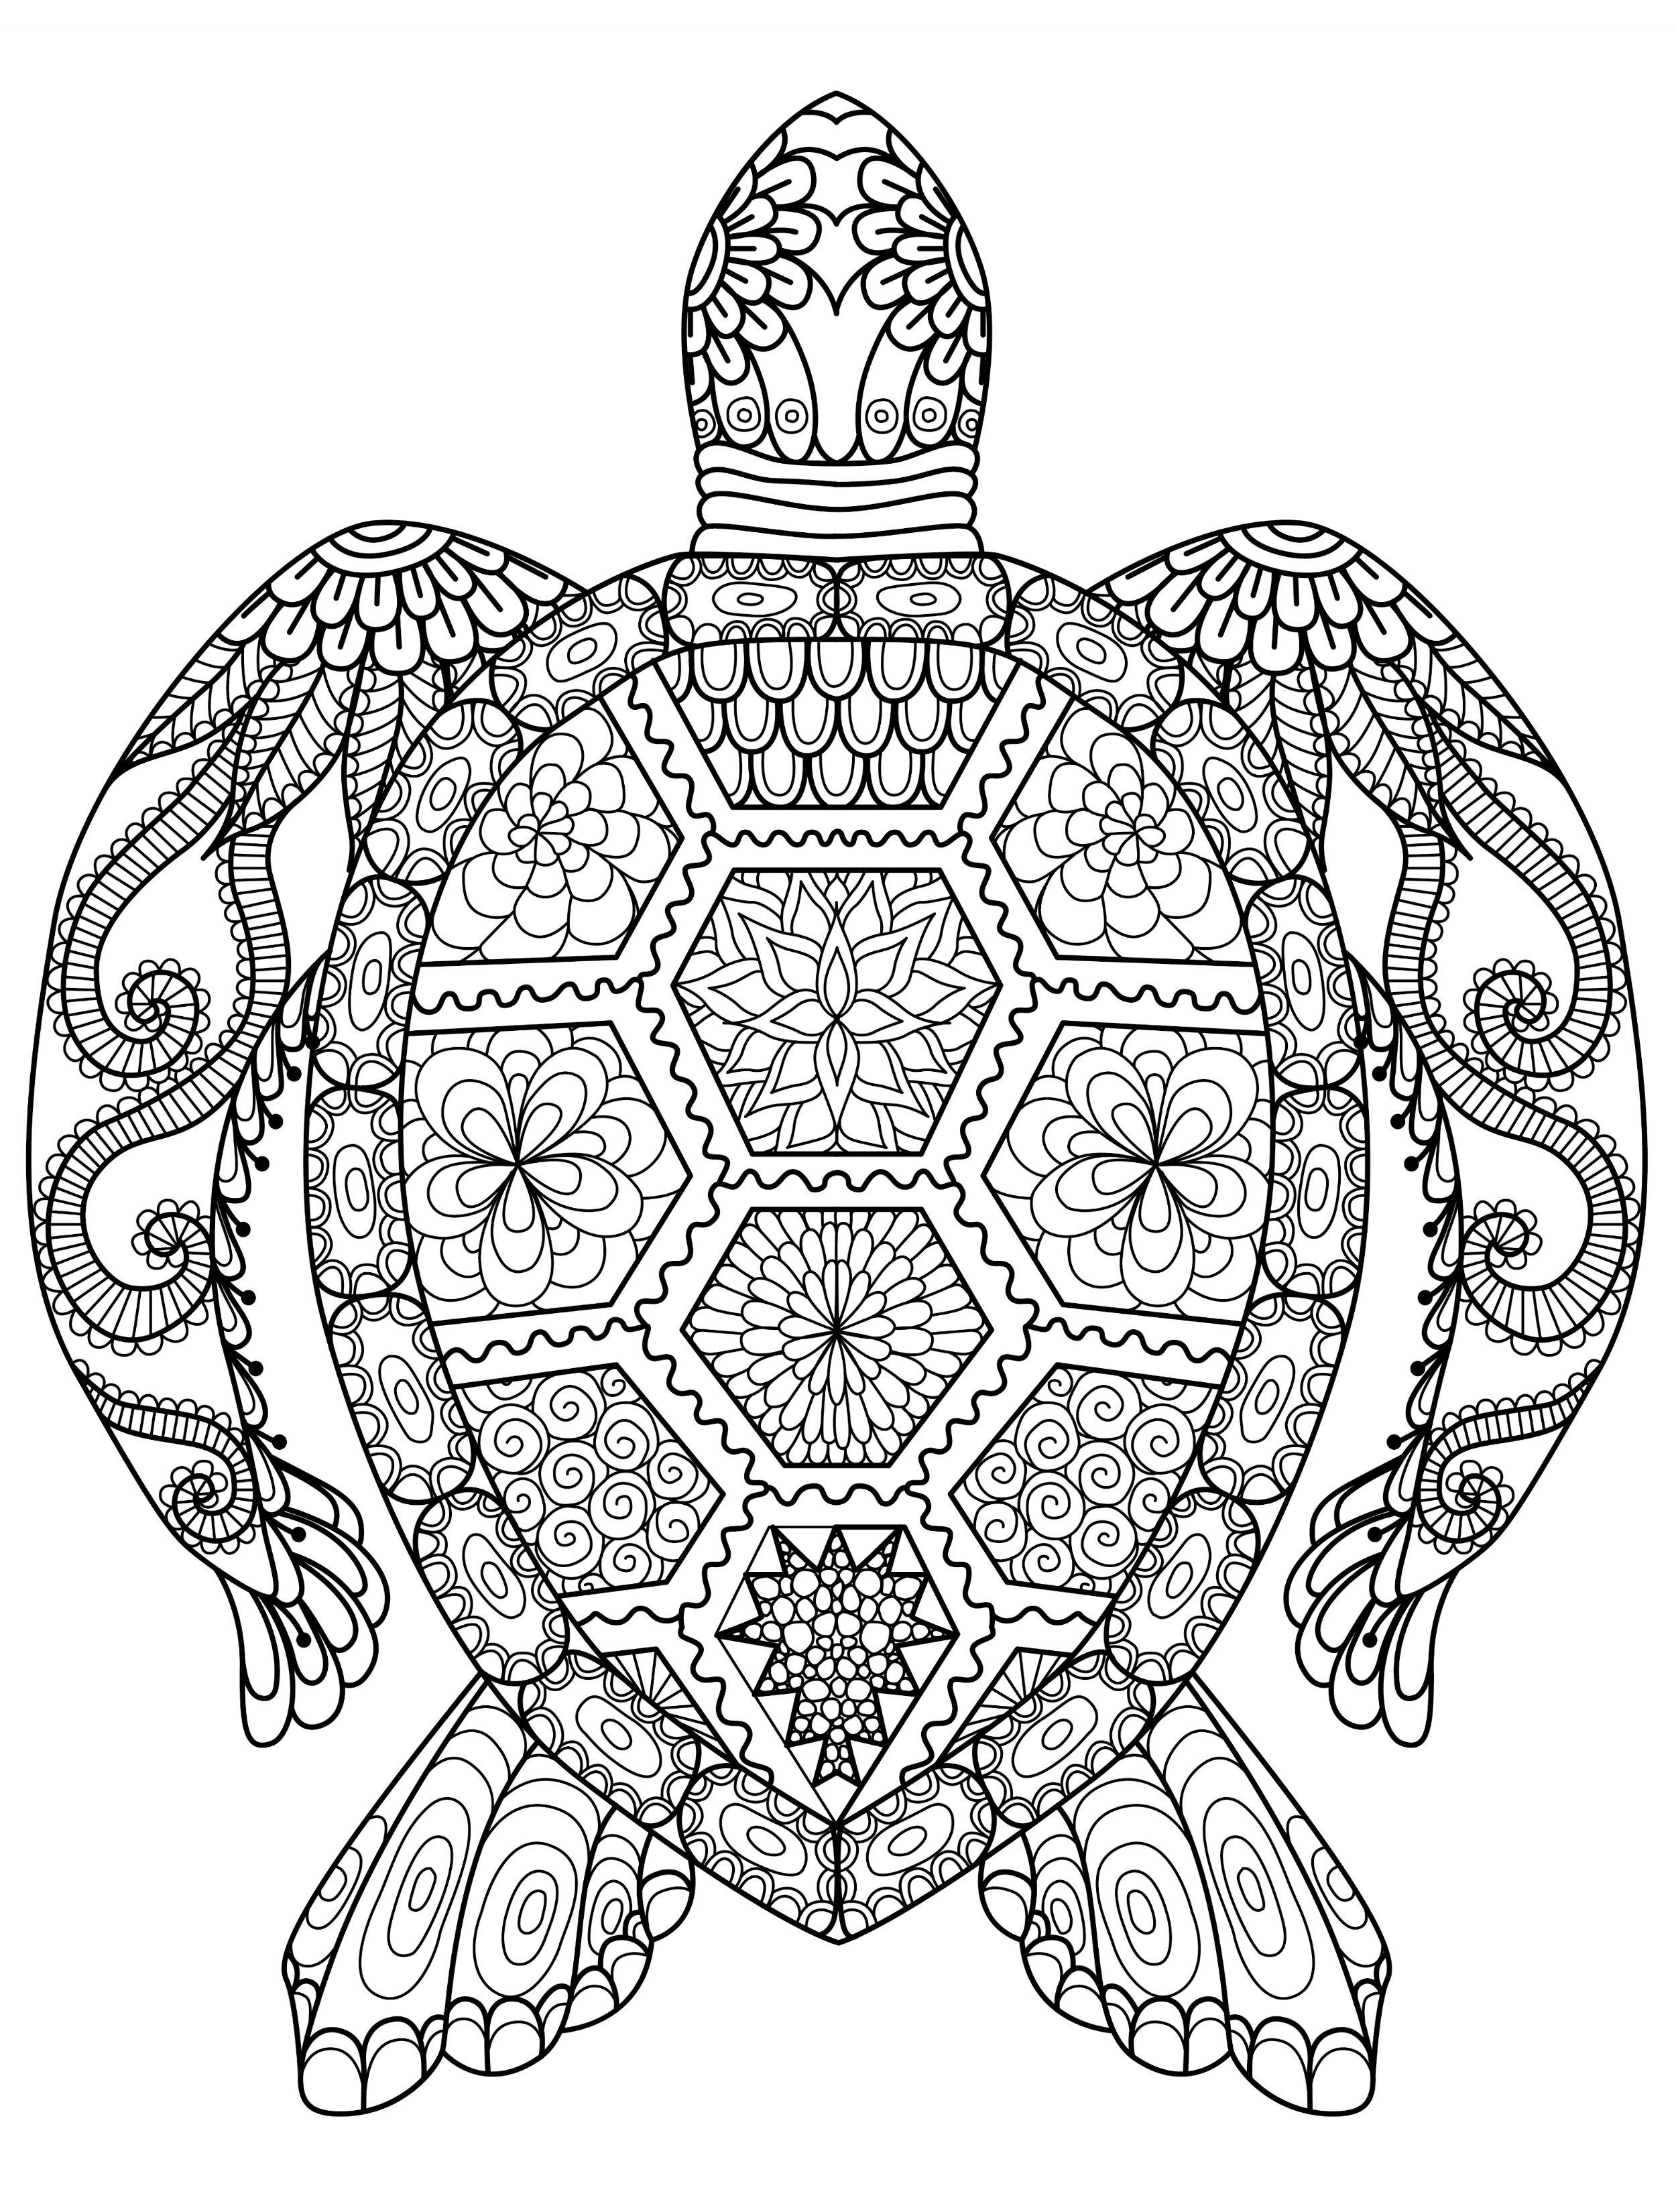 coloring pages for adults free 20 Gorgeous Free Printable Adult Coloring Pages … | Adult Coloring  coloring pages for adults free